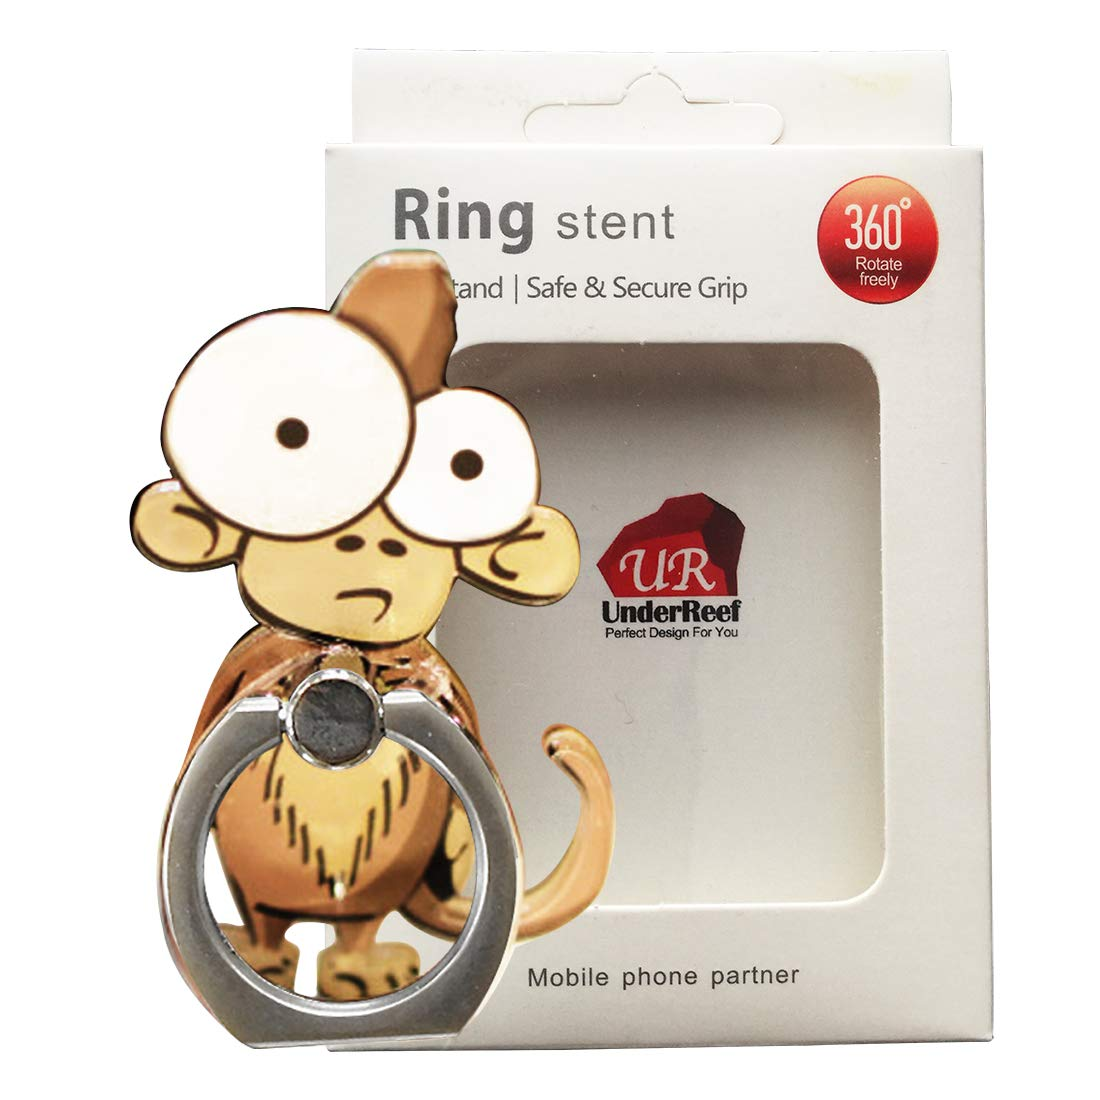 Cell Phone Finger Ring Holder Cute Animal Smartphone Stand 360 Swivel for iPhone, Ipad, Samsung HTC Nokia Smartphones Tablet,by UnderReef (Monkey) by UnderReef (Image #7)